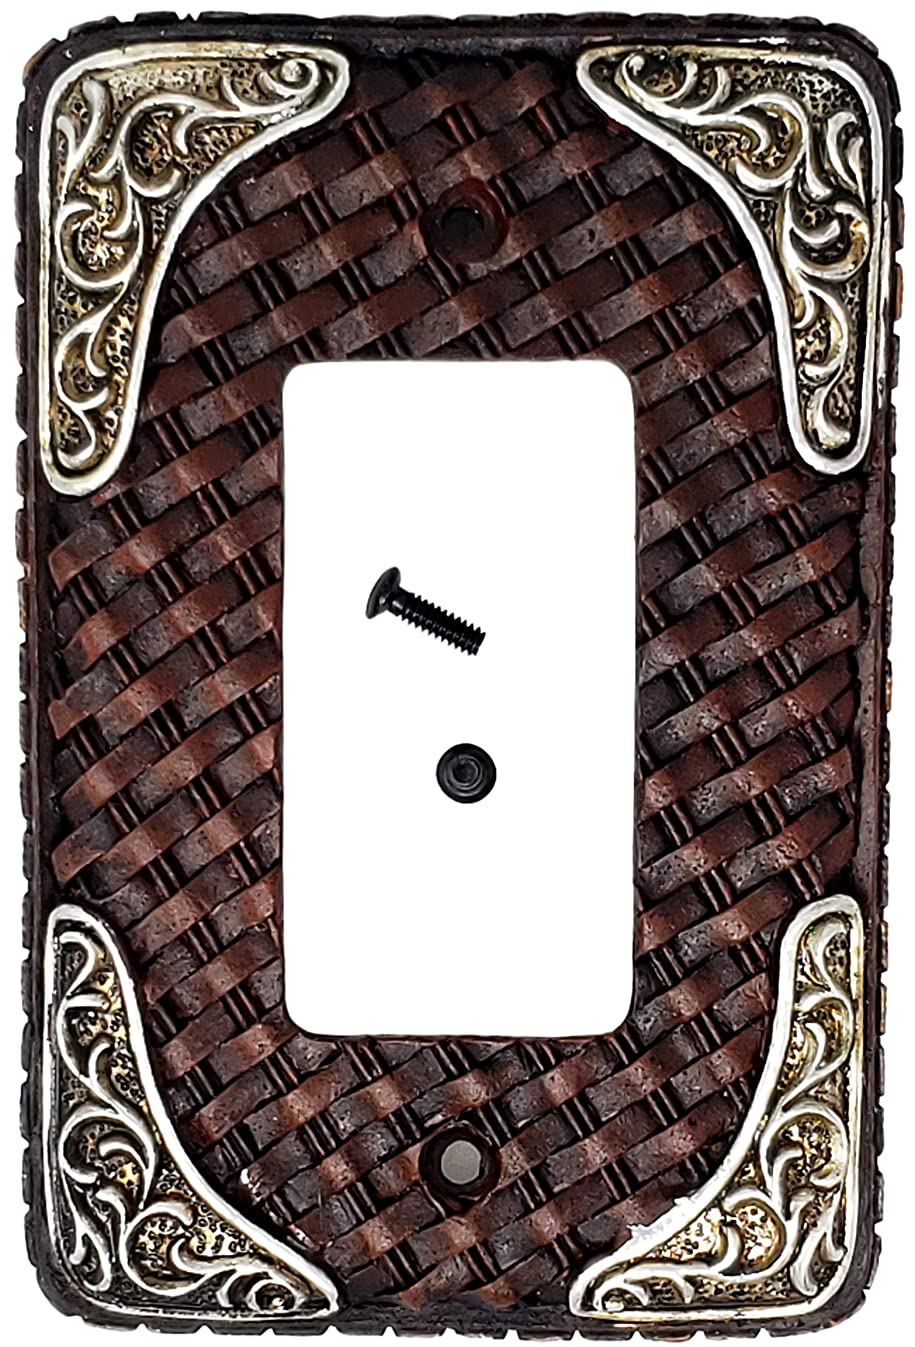 LEATHER SINGLE ROCKER SWITCH PLATE COVER